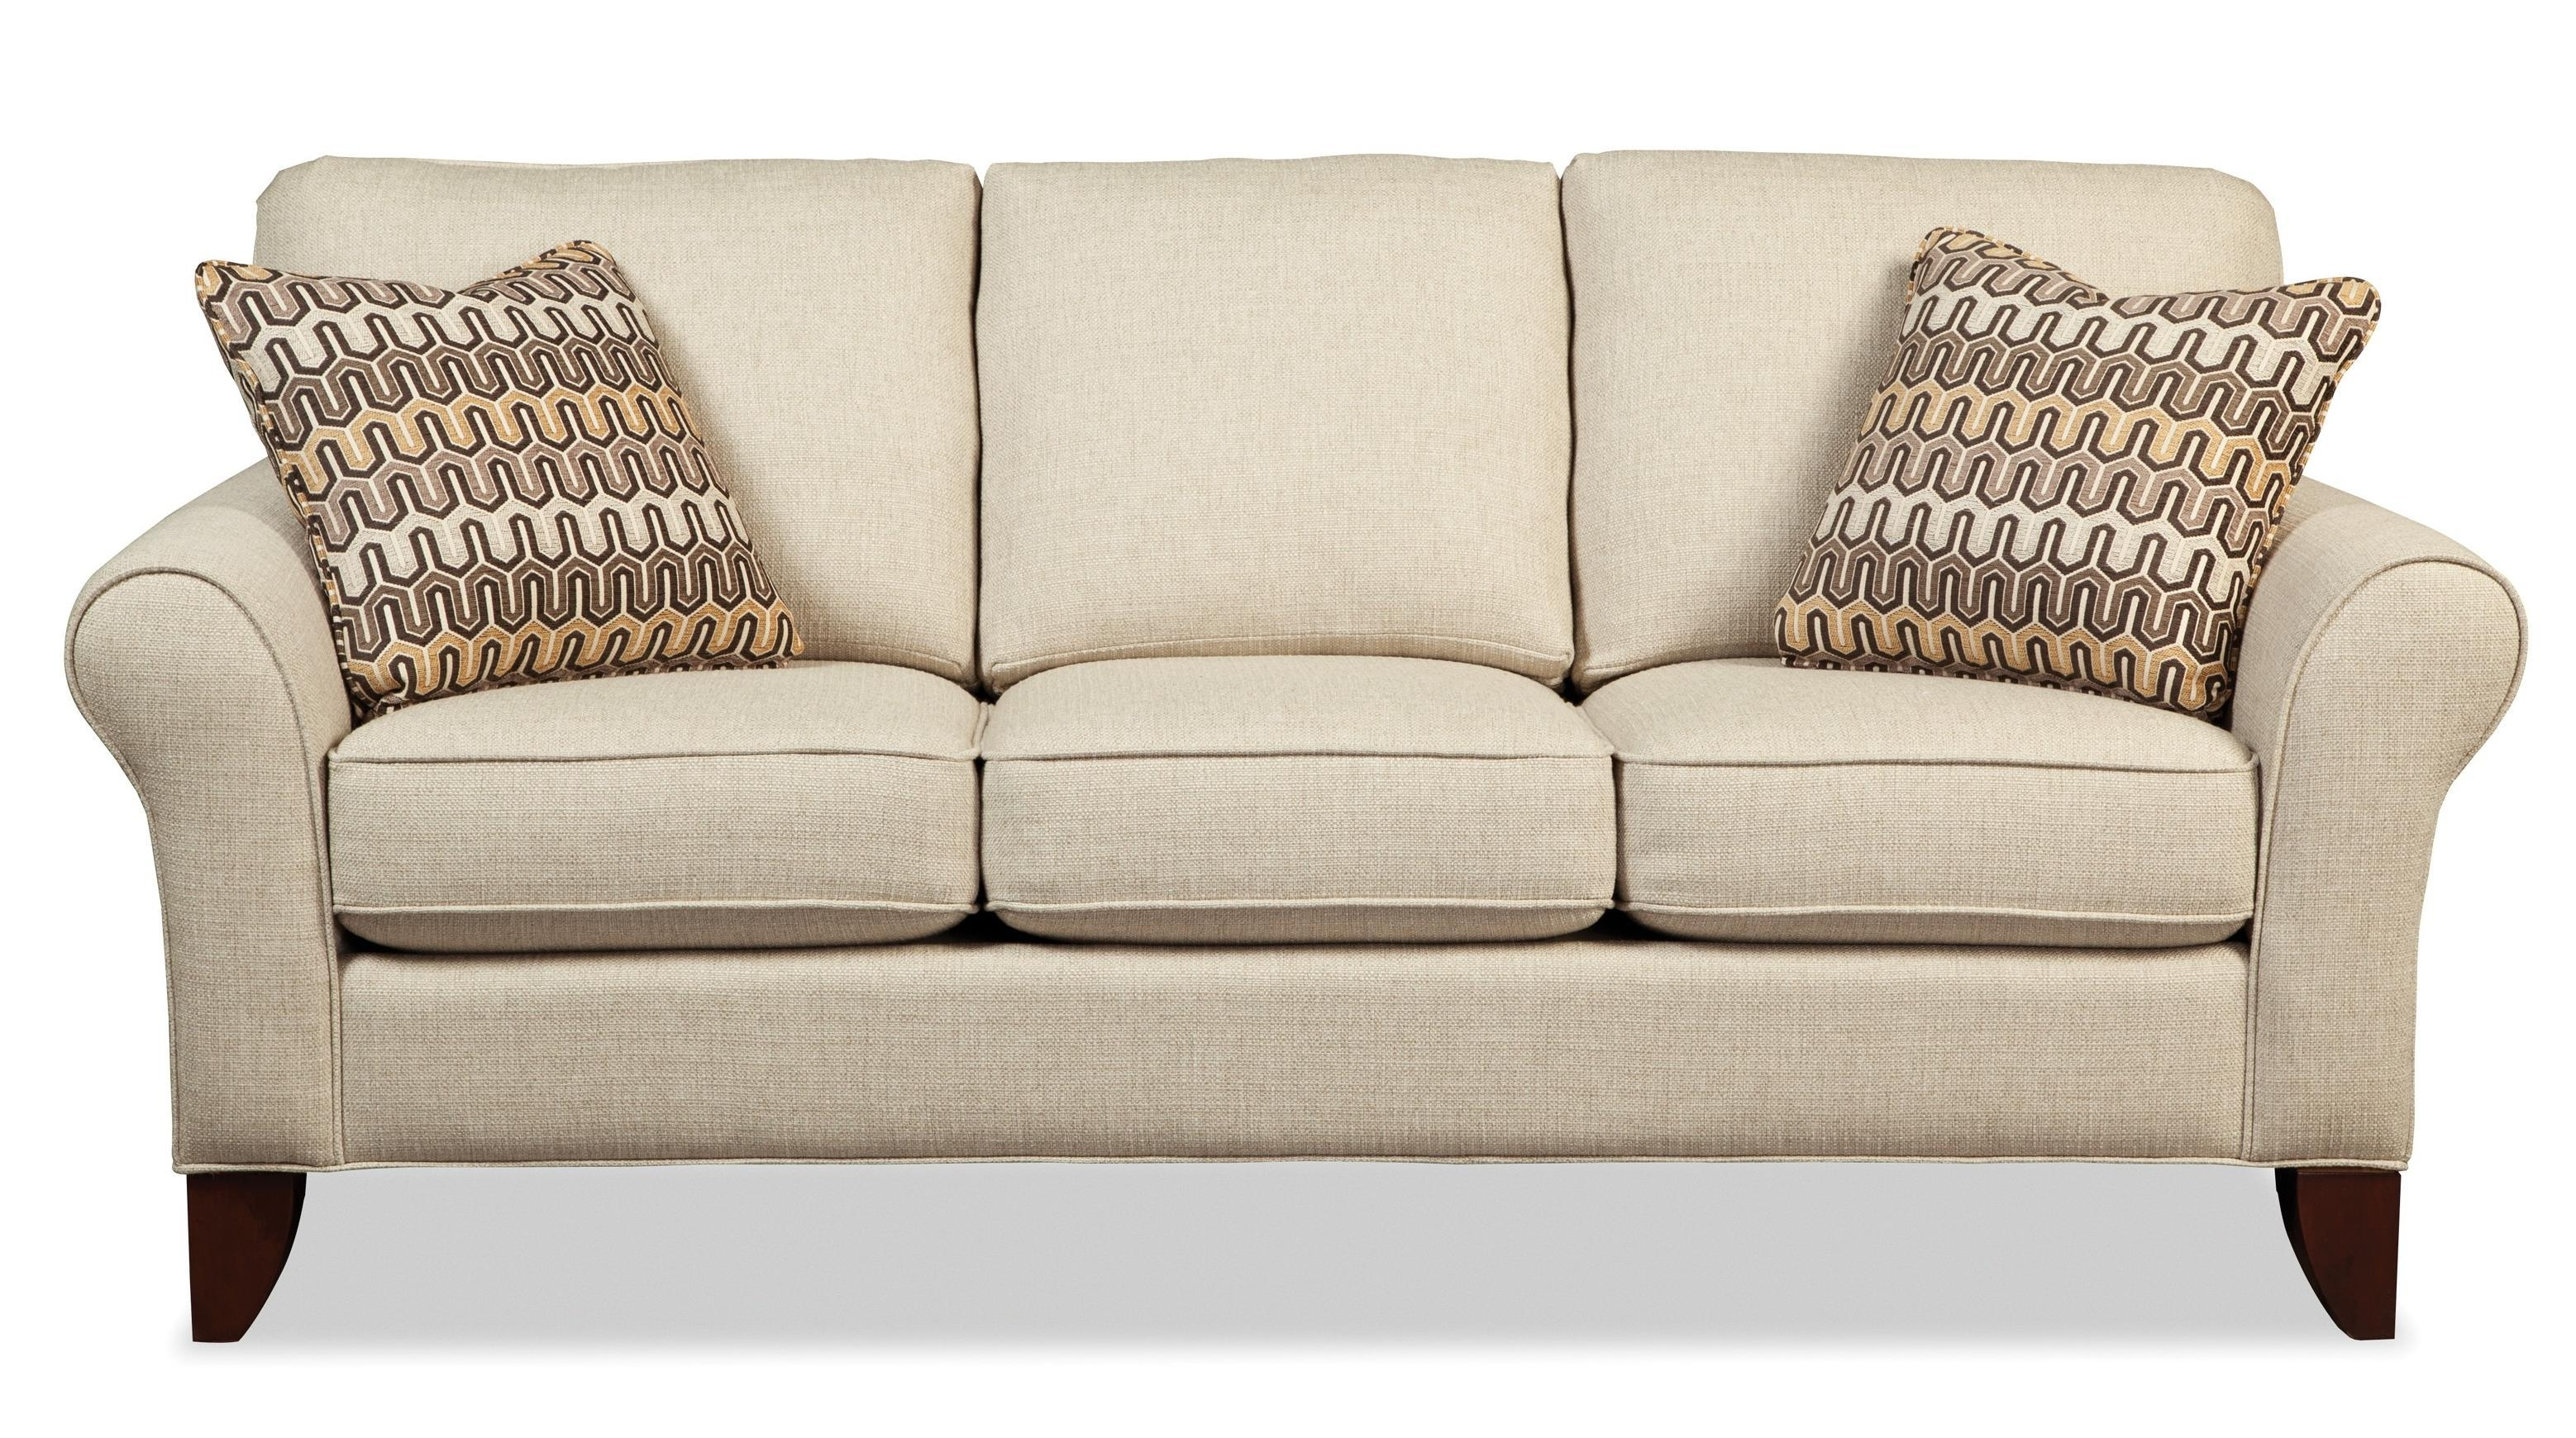 Transitional Small Scale Sofacraftmaster | Wolf And Gardiner Pertaining To Small Scale Sofa Bed (View 20 of 20)